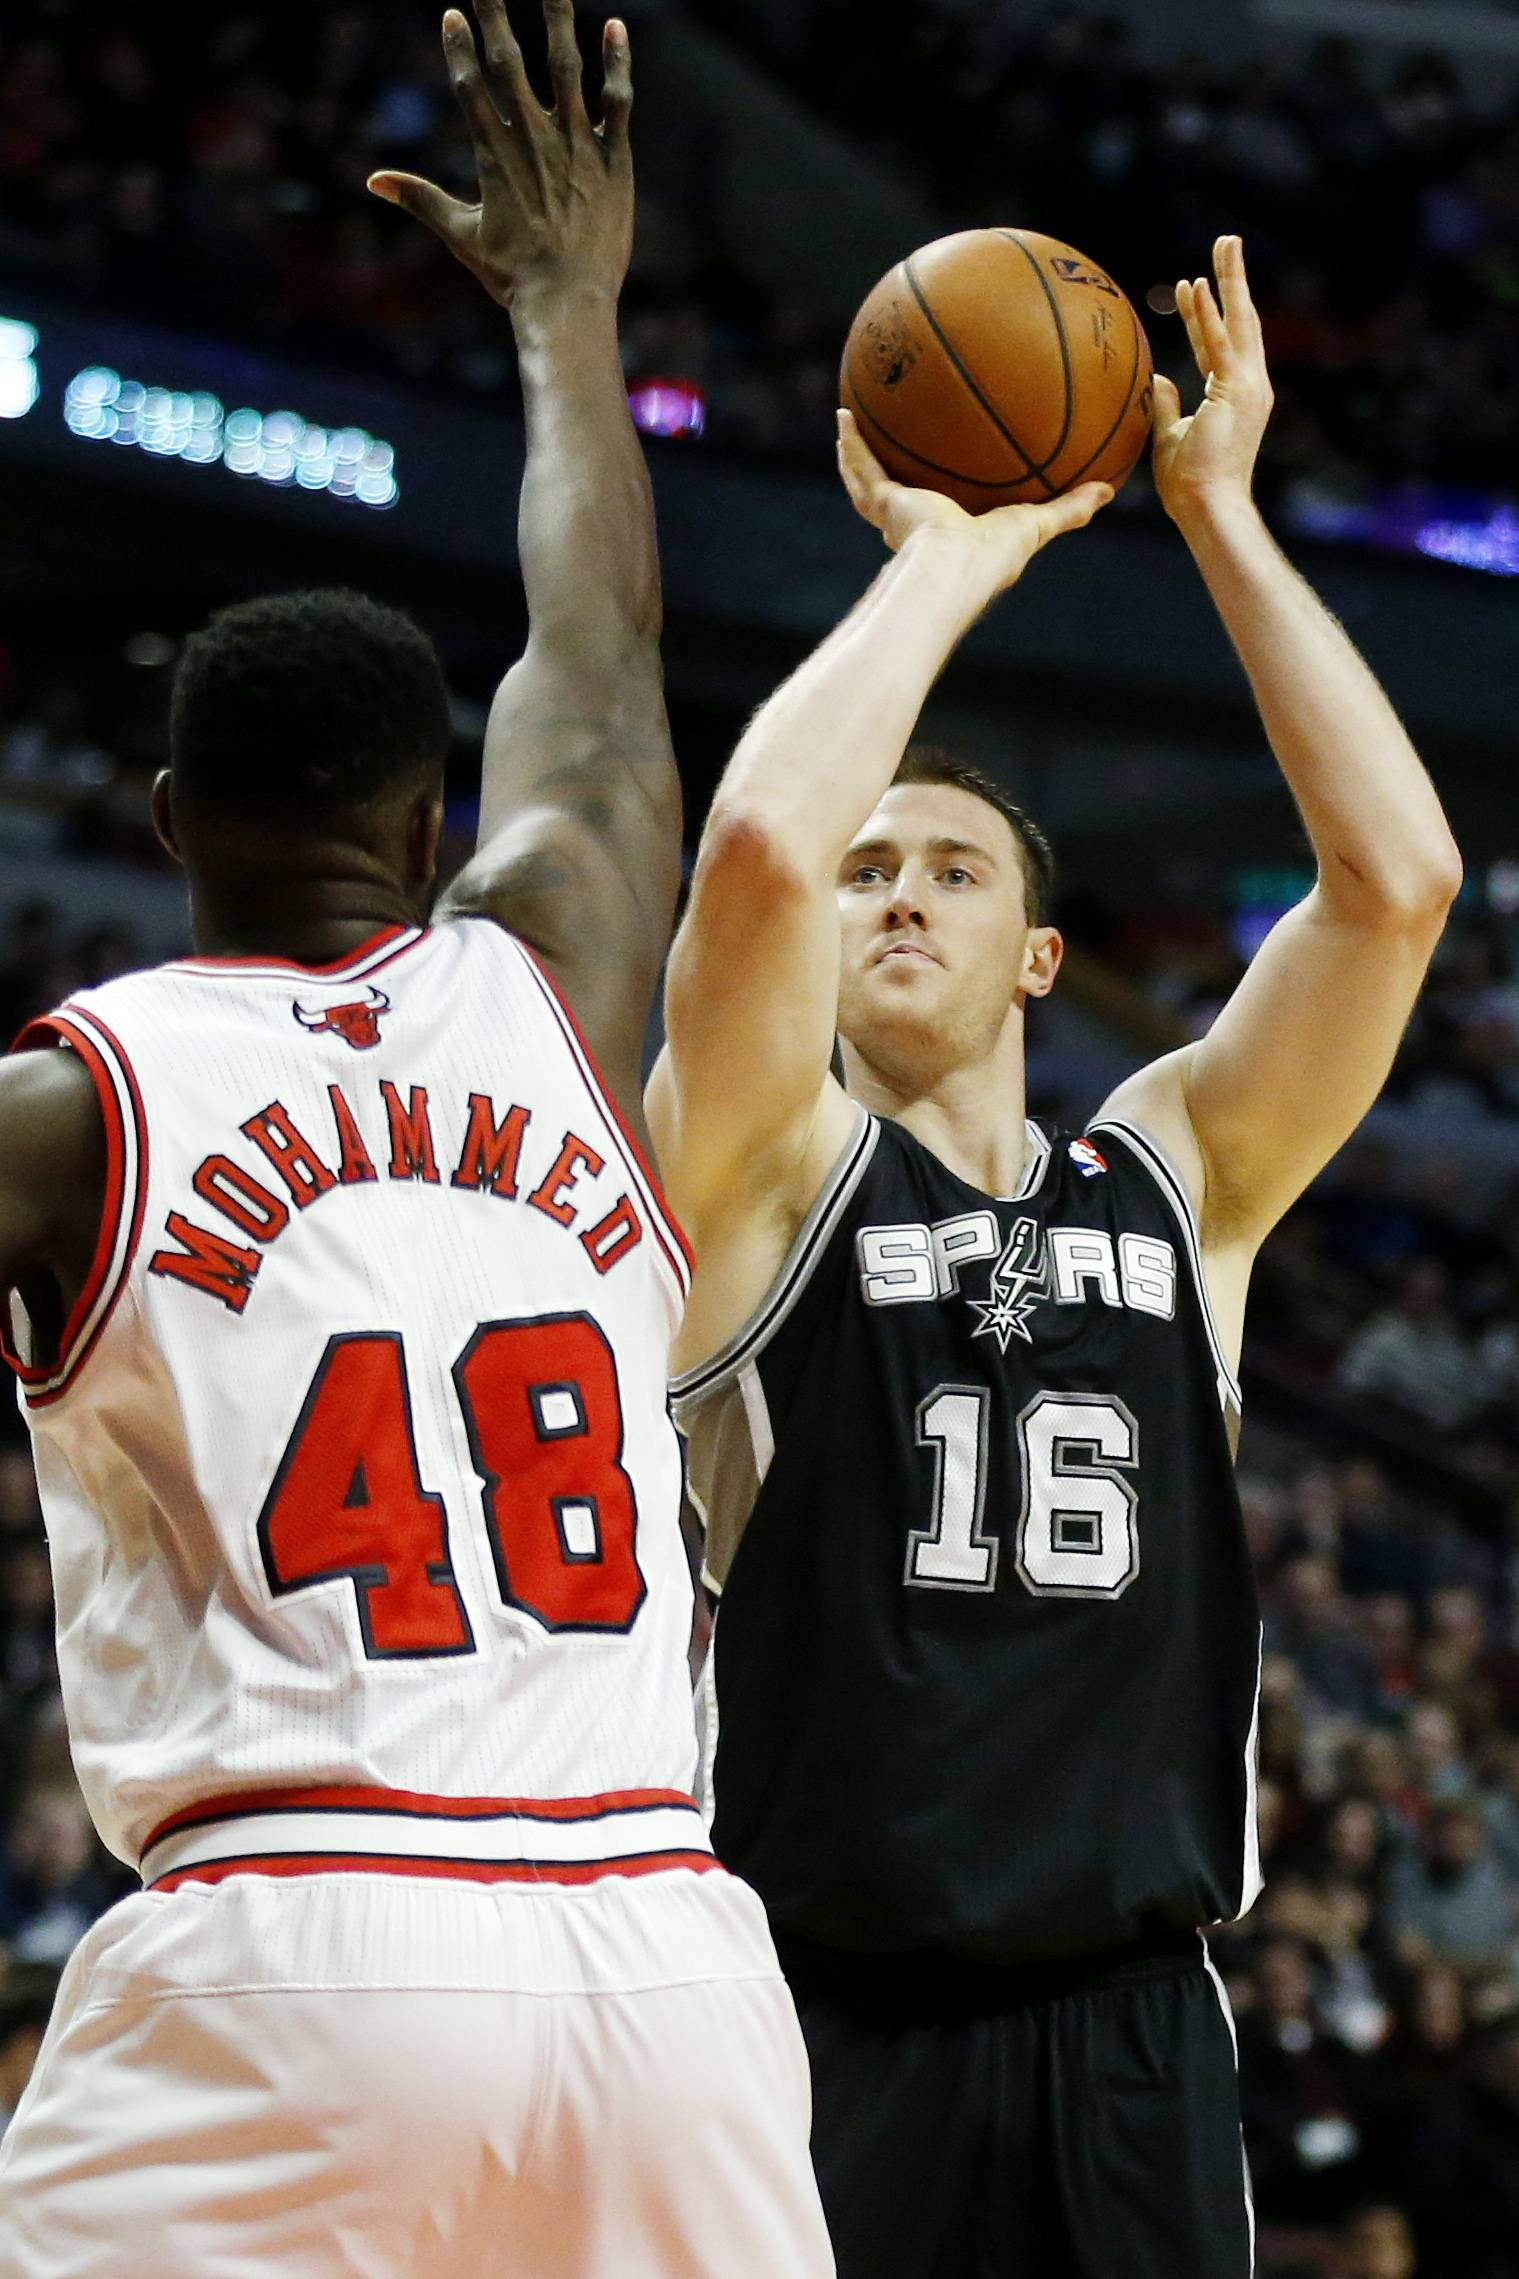 San Antonio Spurs power forward Aron Baynes (16) shoots over Chicago Bulls center Nazr Mohammed (48) during the first half of an NBA basketball game on Tuesday, March 11, 2014, in Chicago. The San Antonio Spurs defeated The Chicago Bulls 104-96. (AP Photo/Andrew A. Nelles)